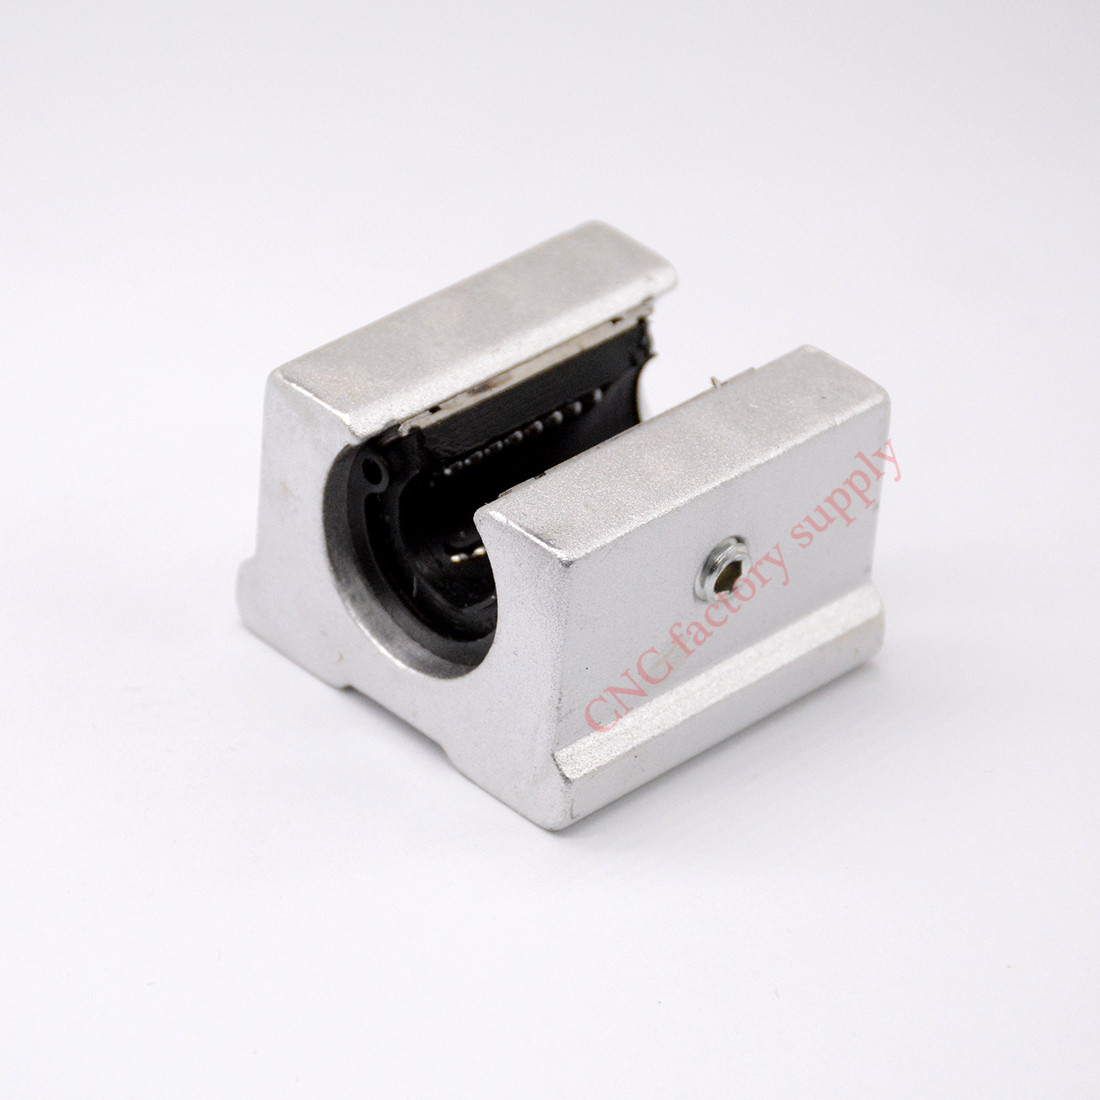 2pcs/lot Free shipping SBR25UU 25mm Linear Ball Bearing Block CNC Router SBR25 бударагина о в латинские надписи в петербурге latin inscriptions in saint petersburg изд 2 е испр и доп